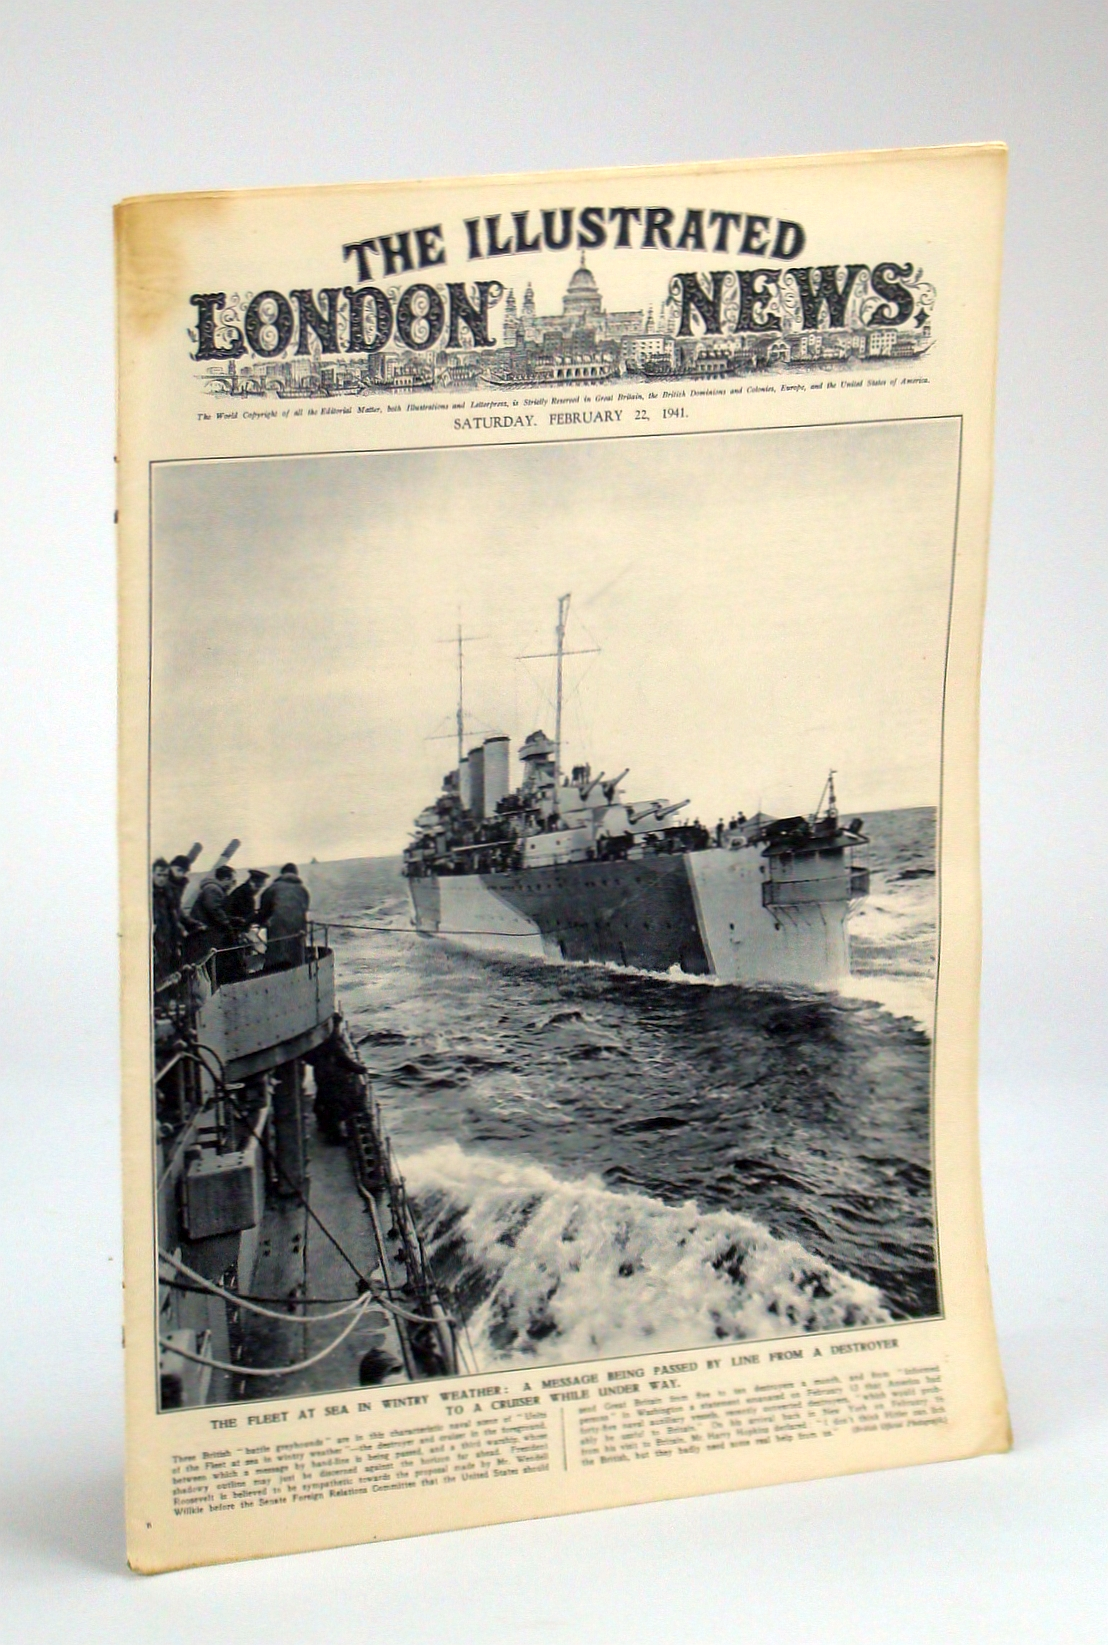 Image for The Illustrated London News, Saturday, February [Feb.] 22, 1941 - America's Steel Industral Sinews Support Britain